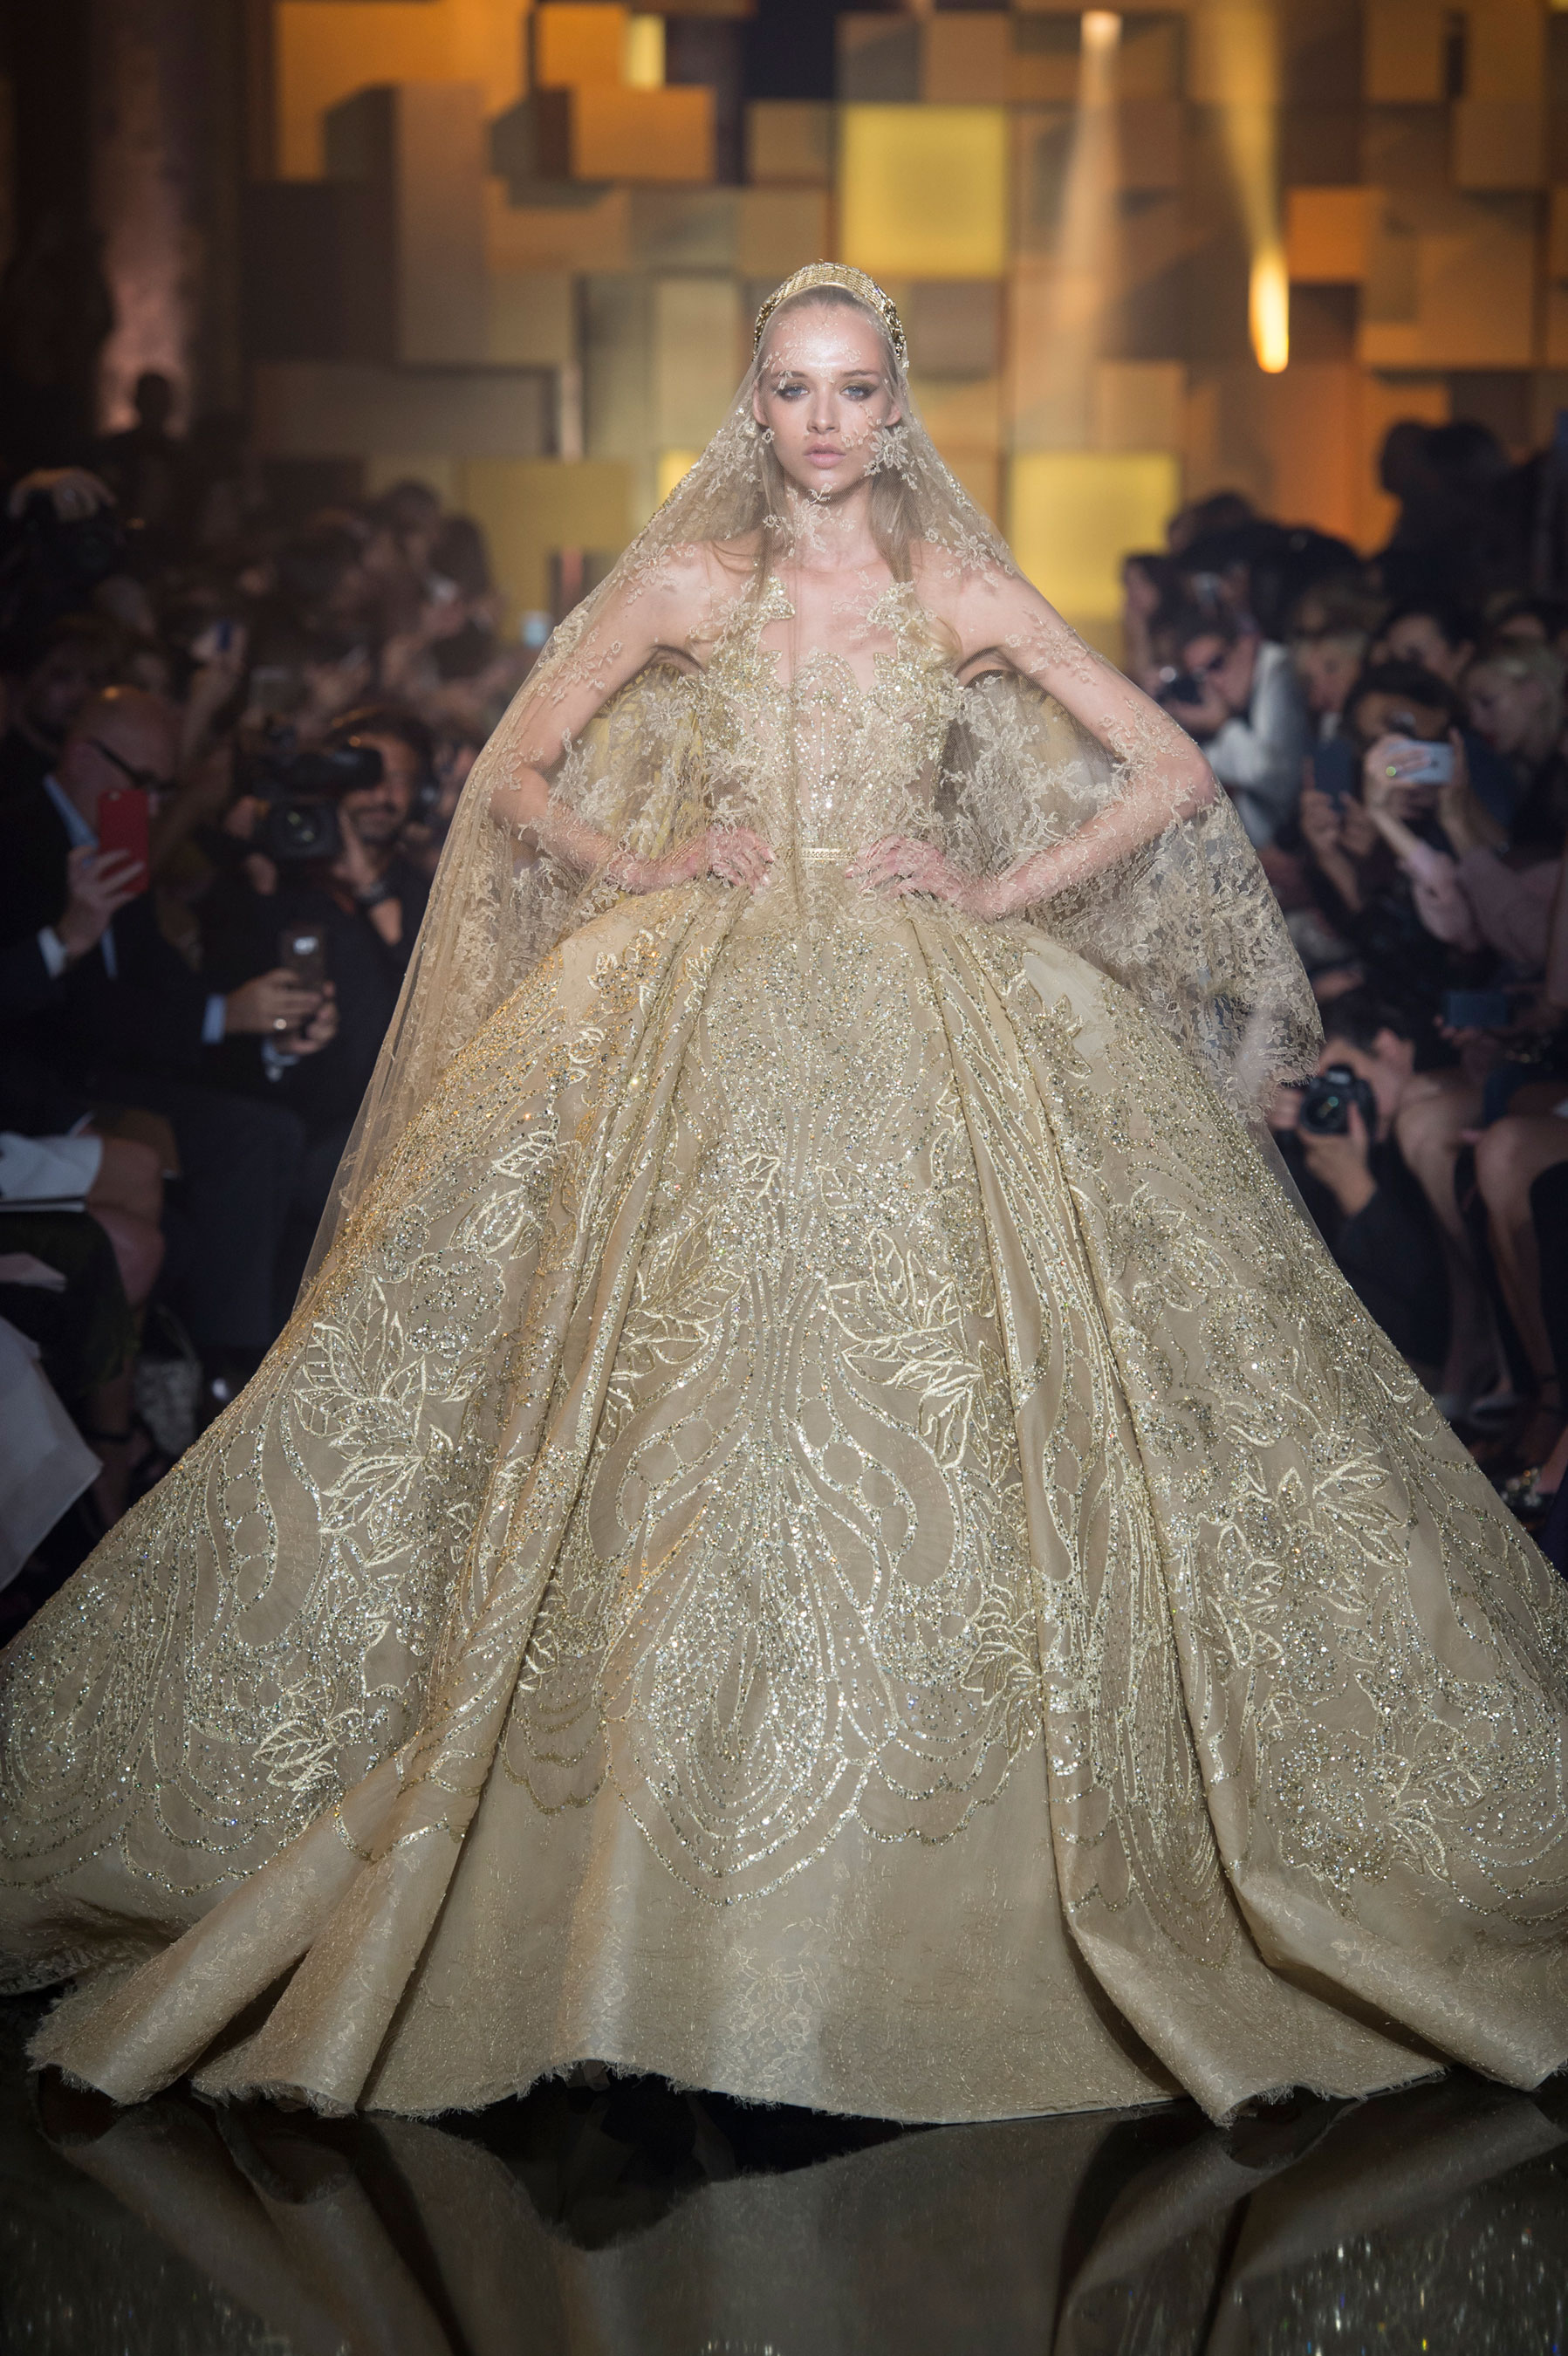 As Per Usual Elie Saab Fashioned A Romantic Collection This Season Why Change Something That Works The Lebanese Designer Paid Tribute To His Wife And Got: Elie Saab Couture Wedding Dress At Reisefeber.org